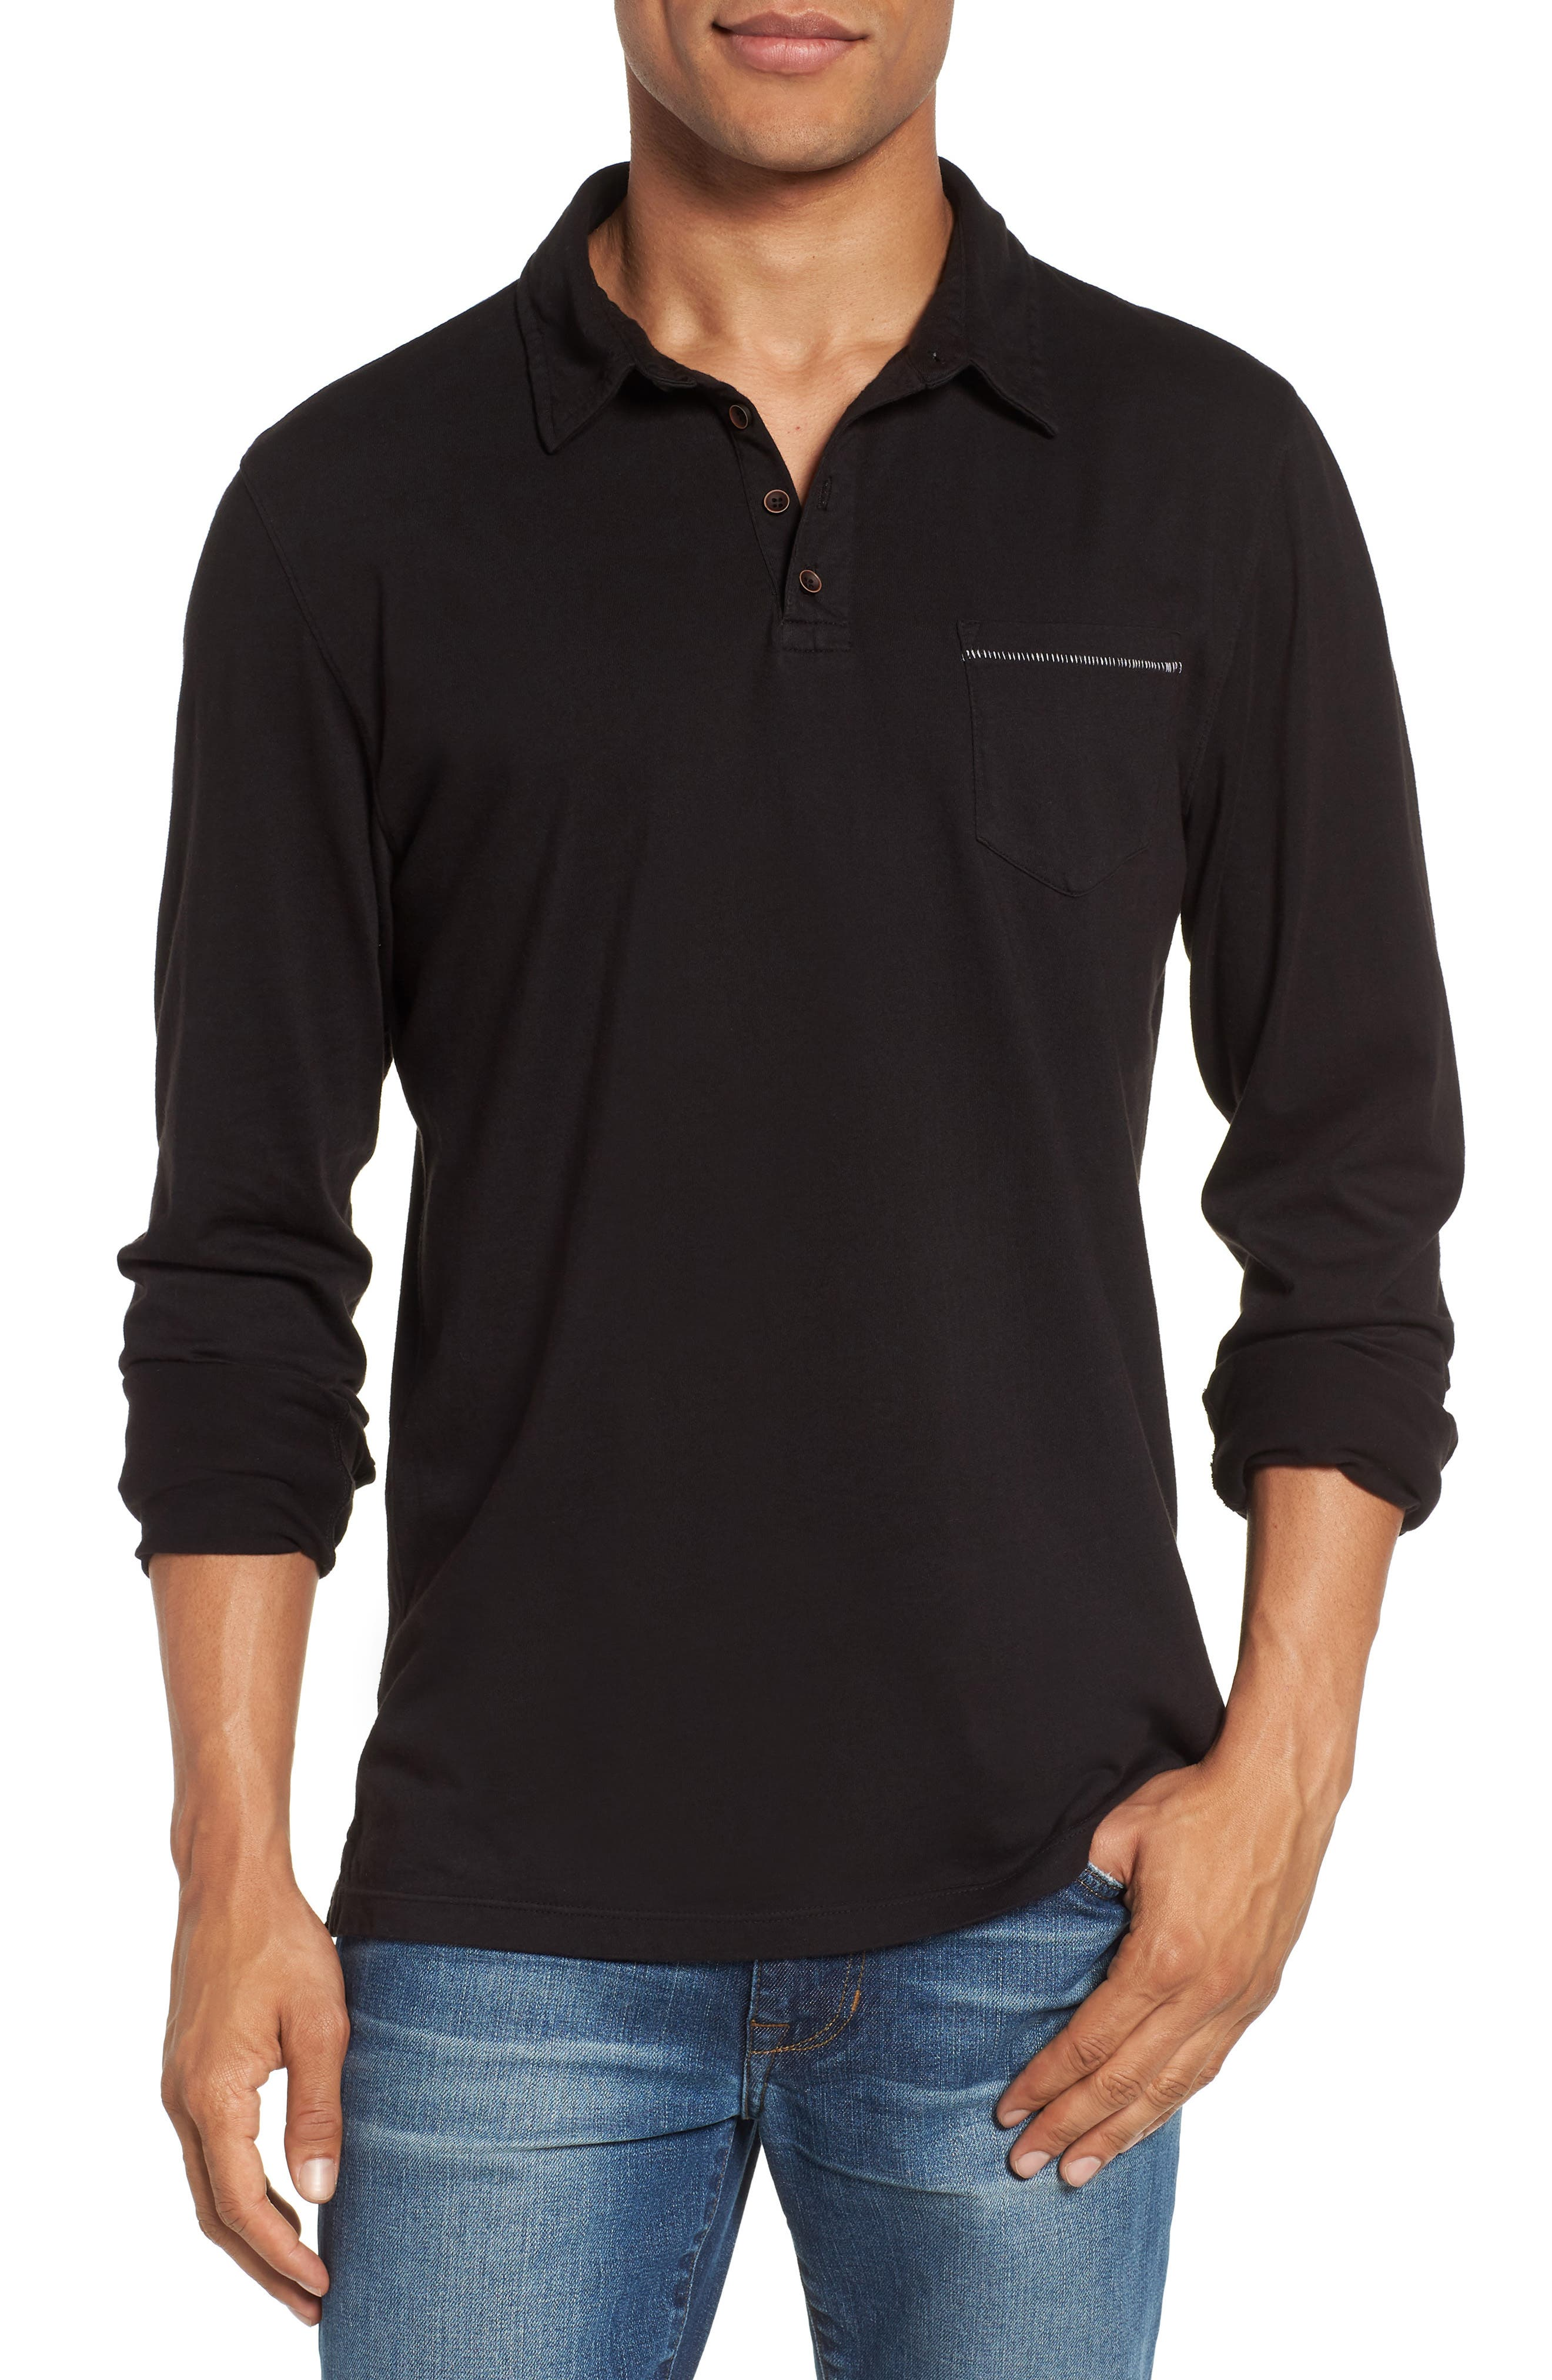 M.Singer Long Sleeve Jersey Polo